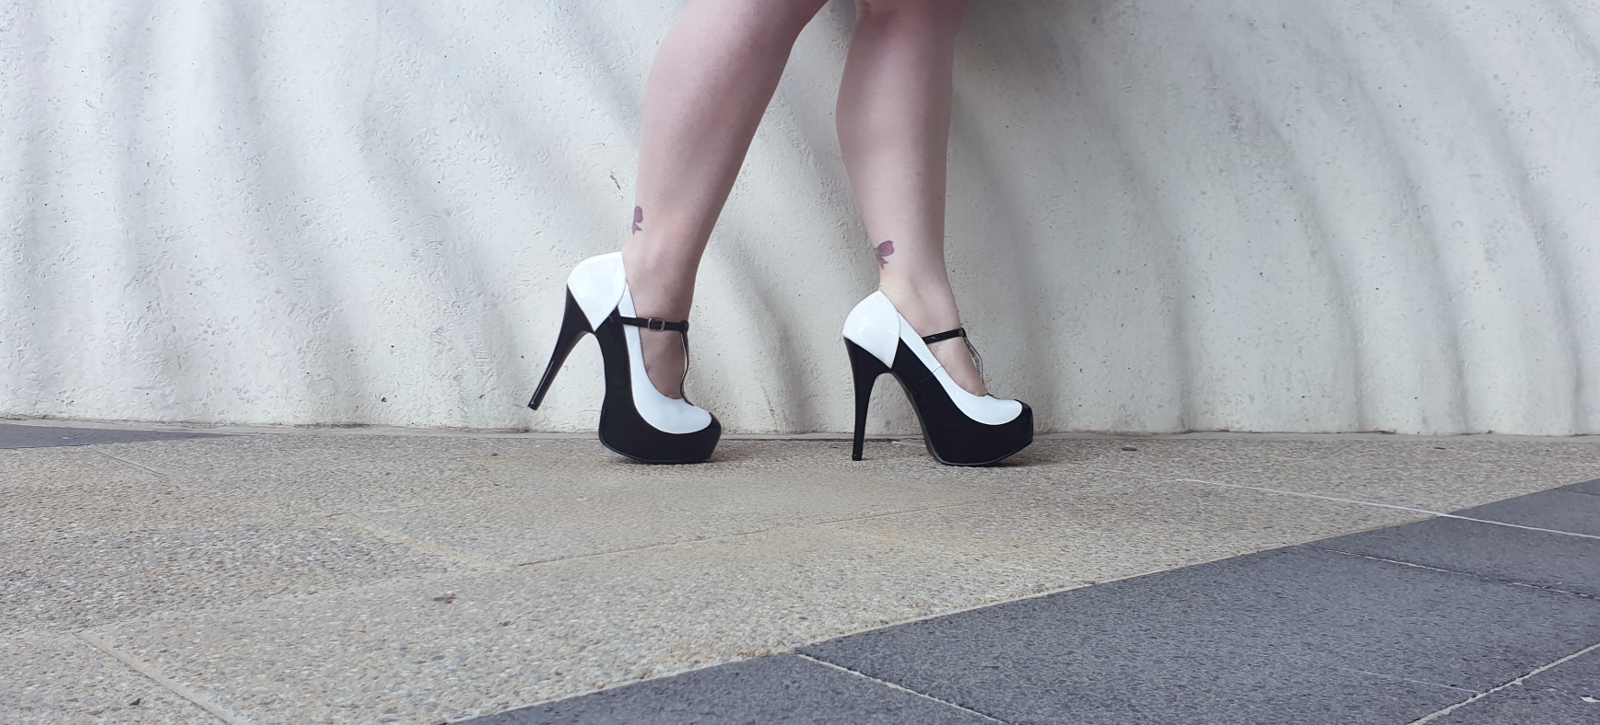 cdf97a202f61e2 Taking inspiration from the mobster styling of yesteryear these stunning  heels are the perfect pair of platforms to pair with your little black  dress or a ...